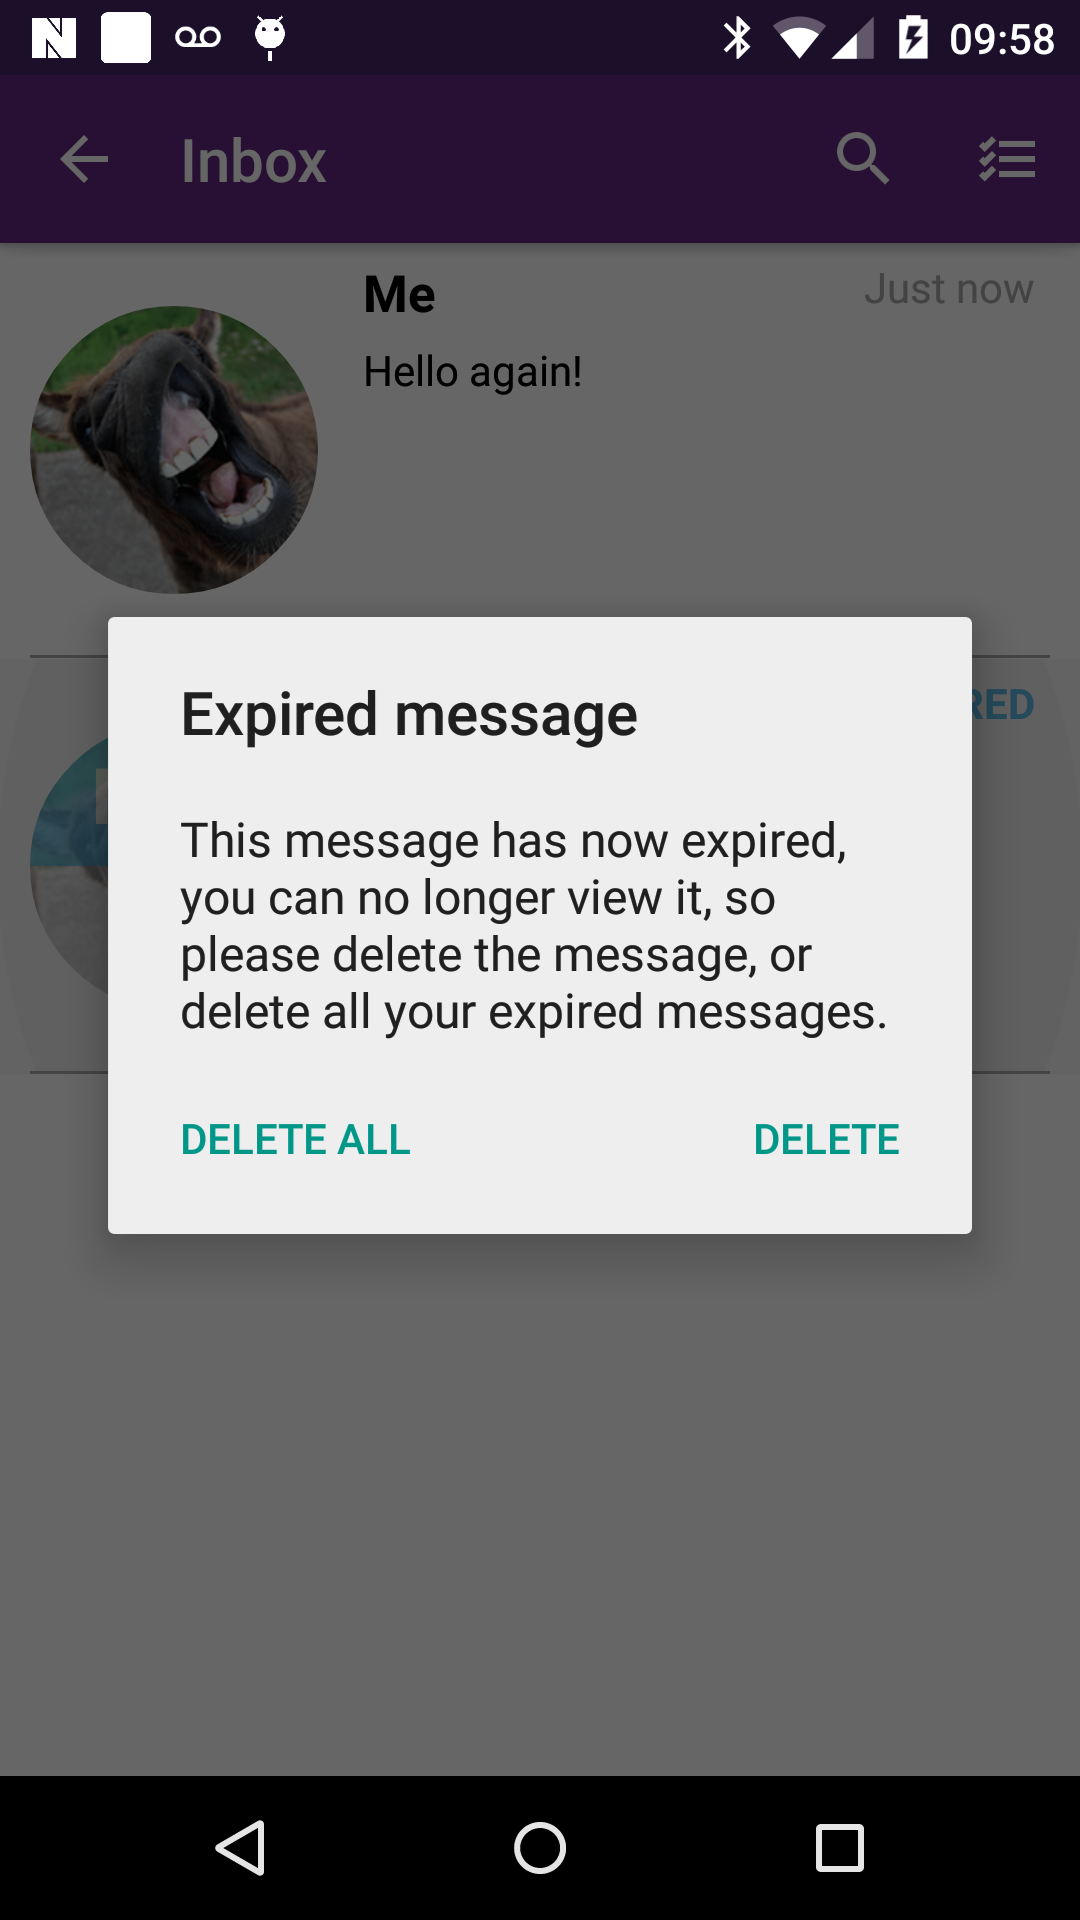 An example of the alert view that is presented to the user if they tap an expired message. On Android device, portrait.